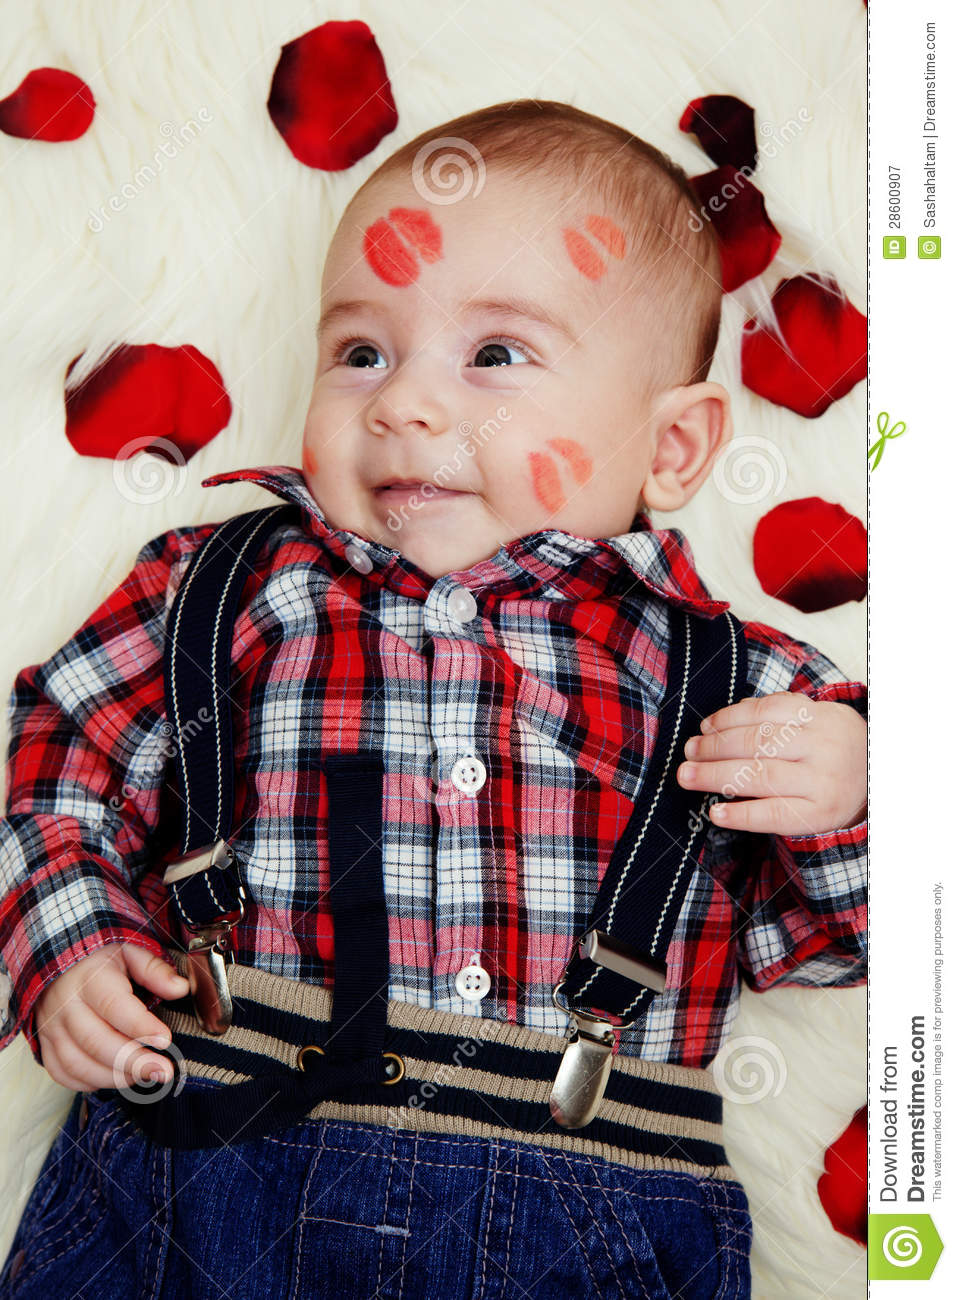 Smiling Cute Baby Boy With Lipstick On His Face Stock Image Lipstik